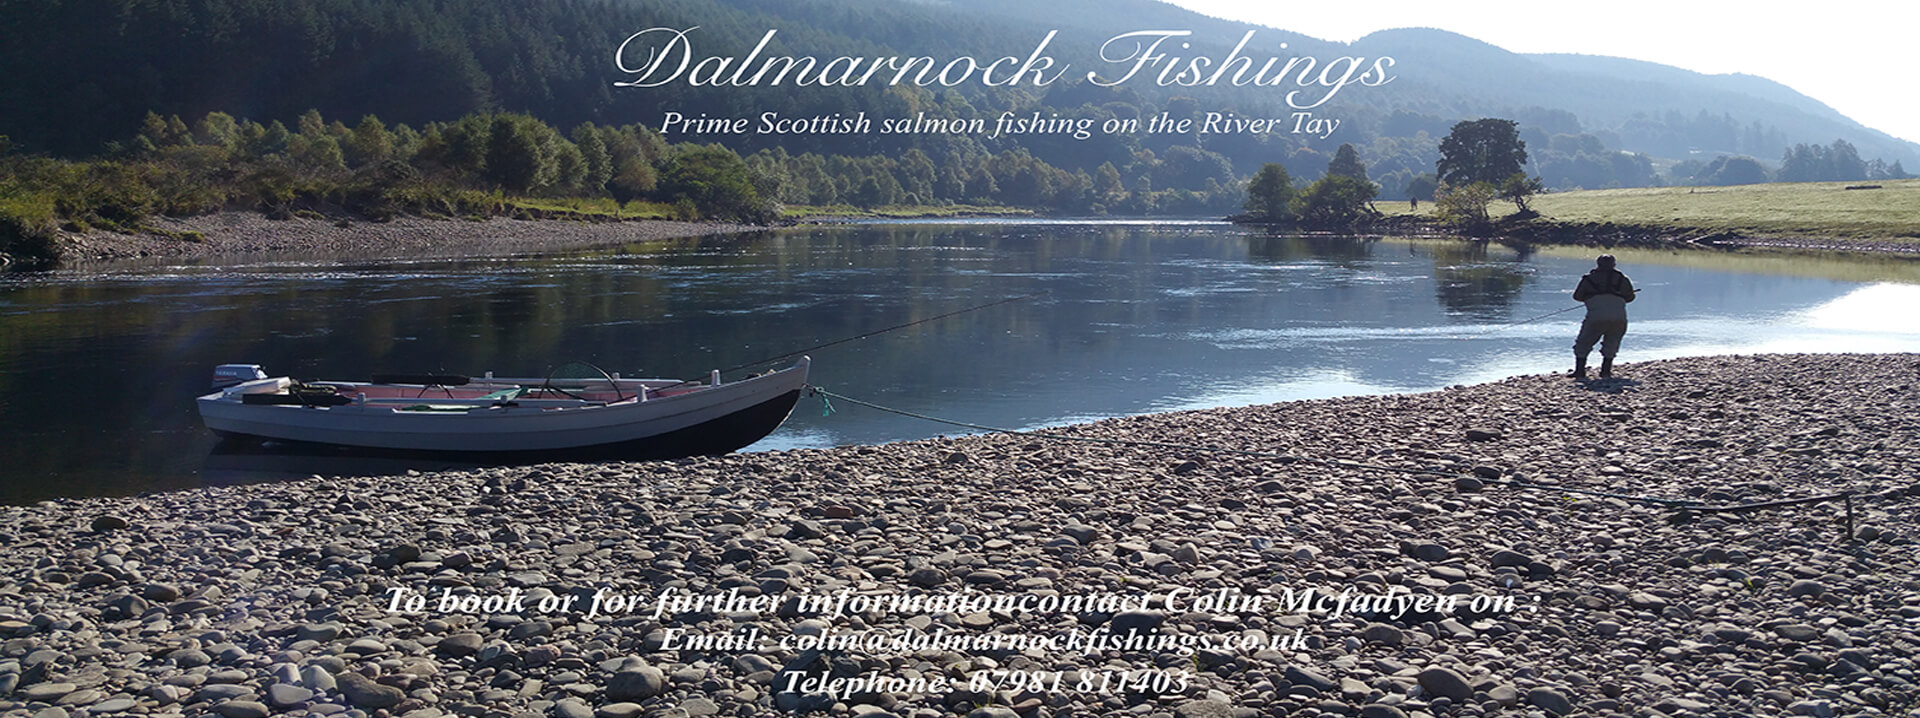 Dalmarnock Fishings